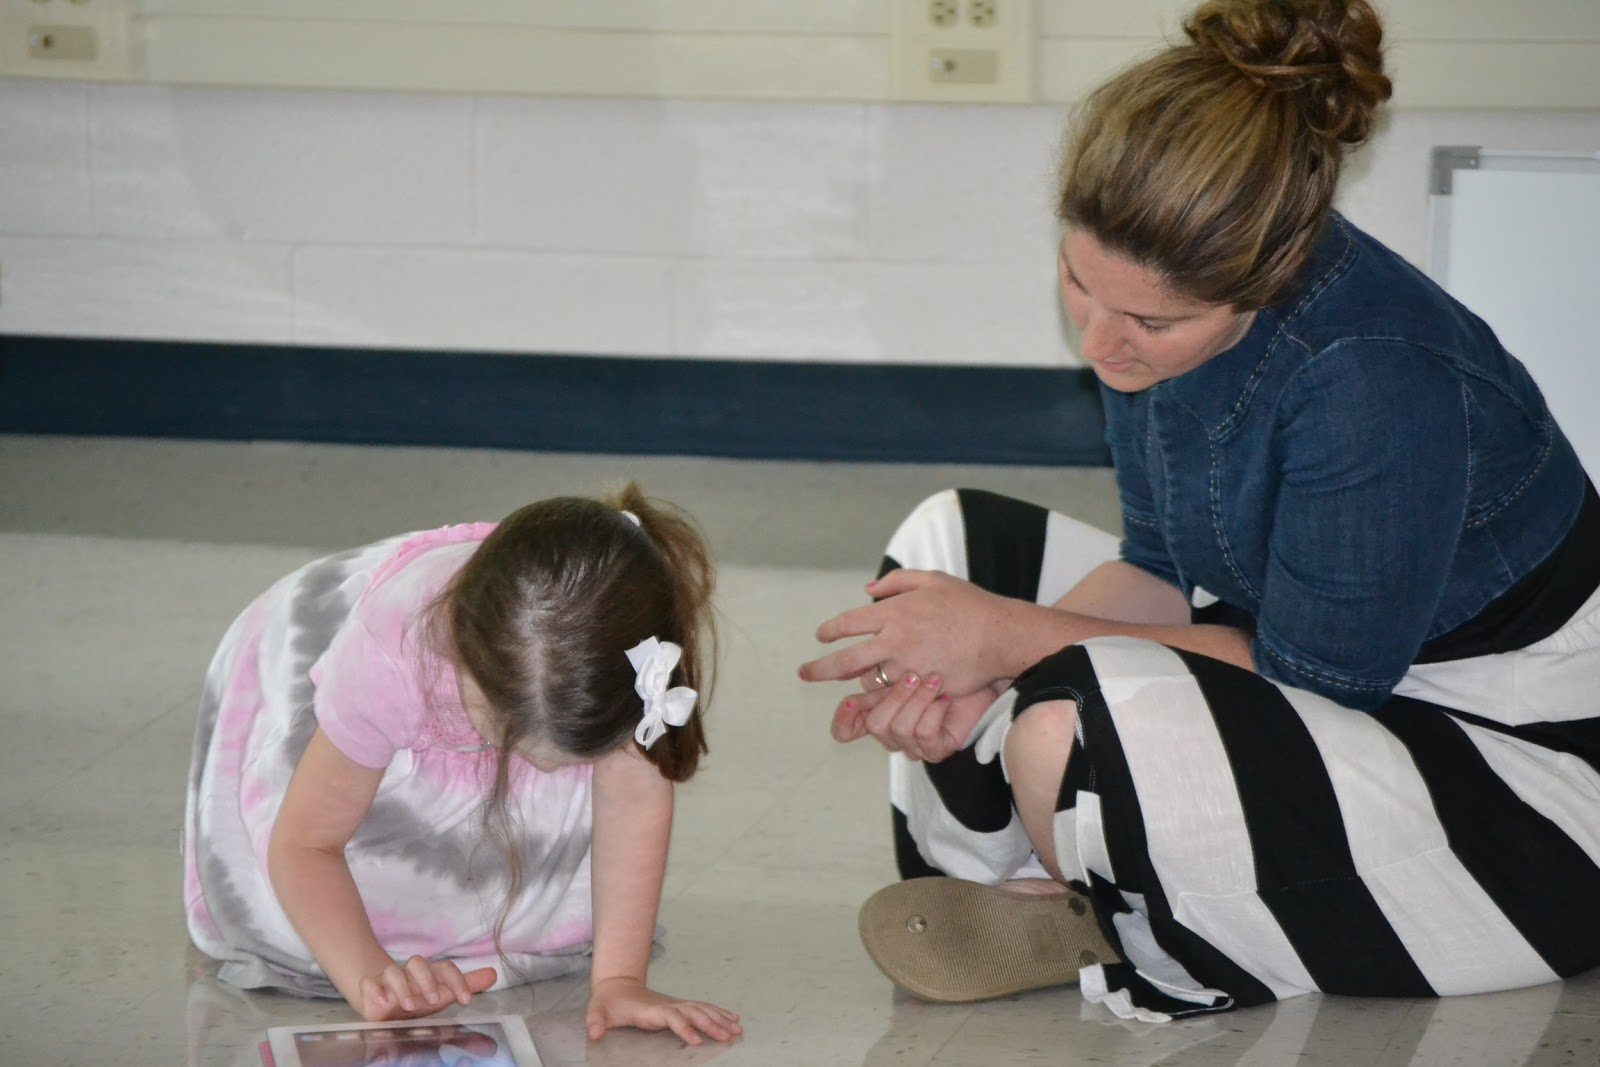 odyssey of the mind coaches guide